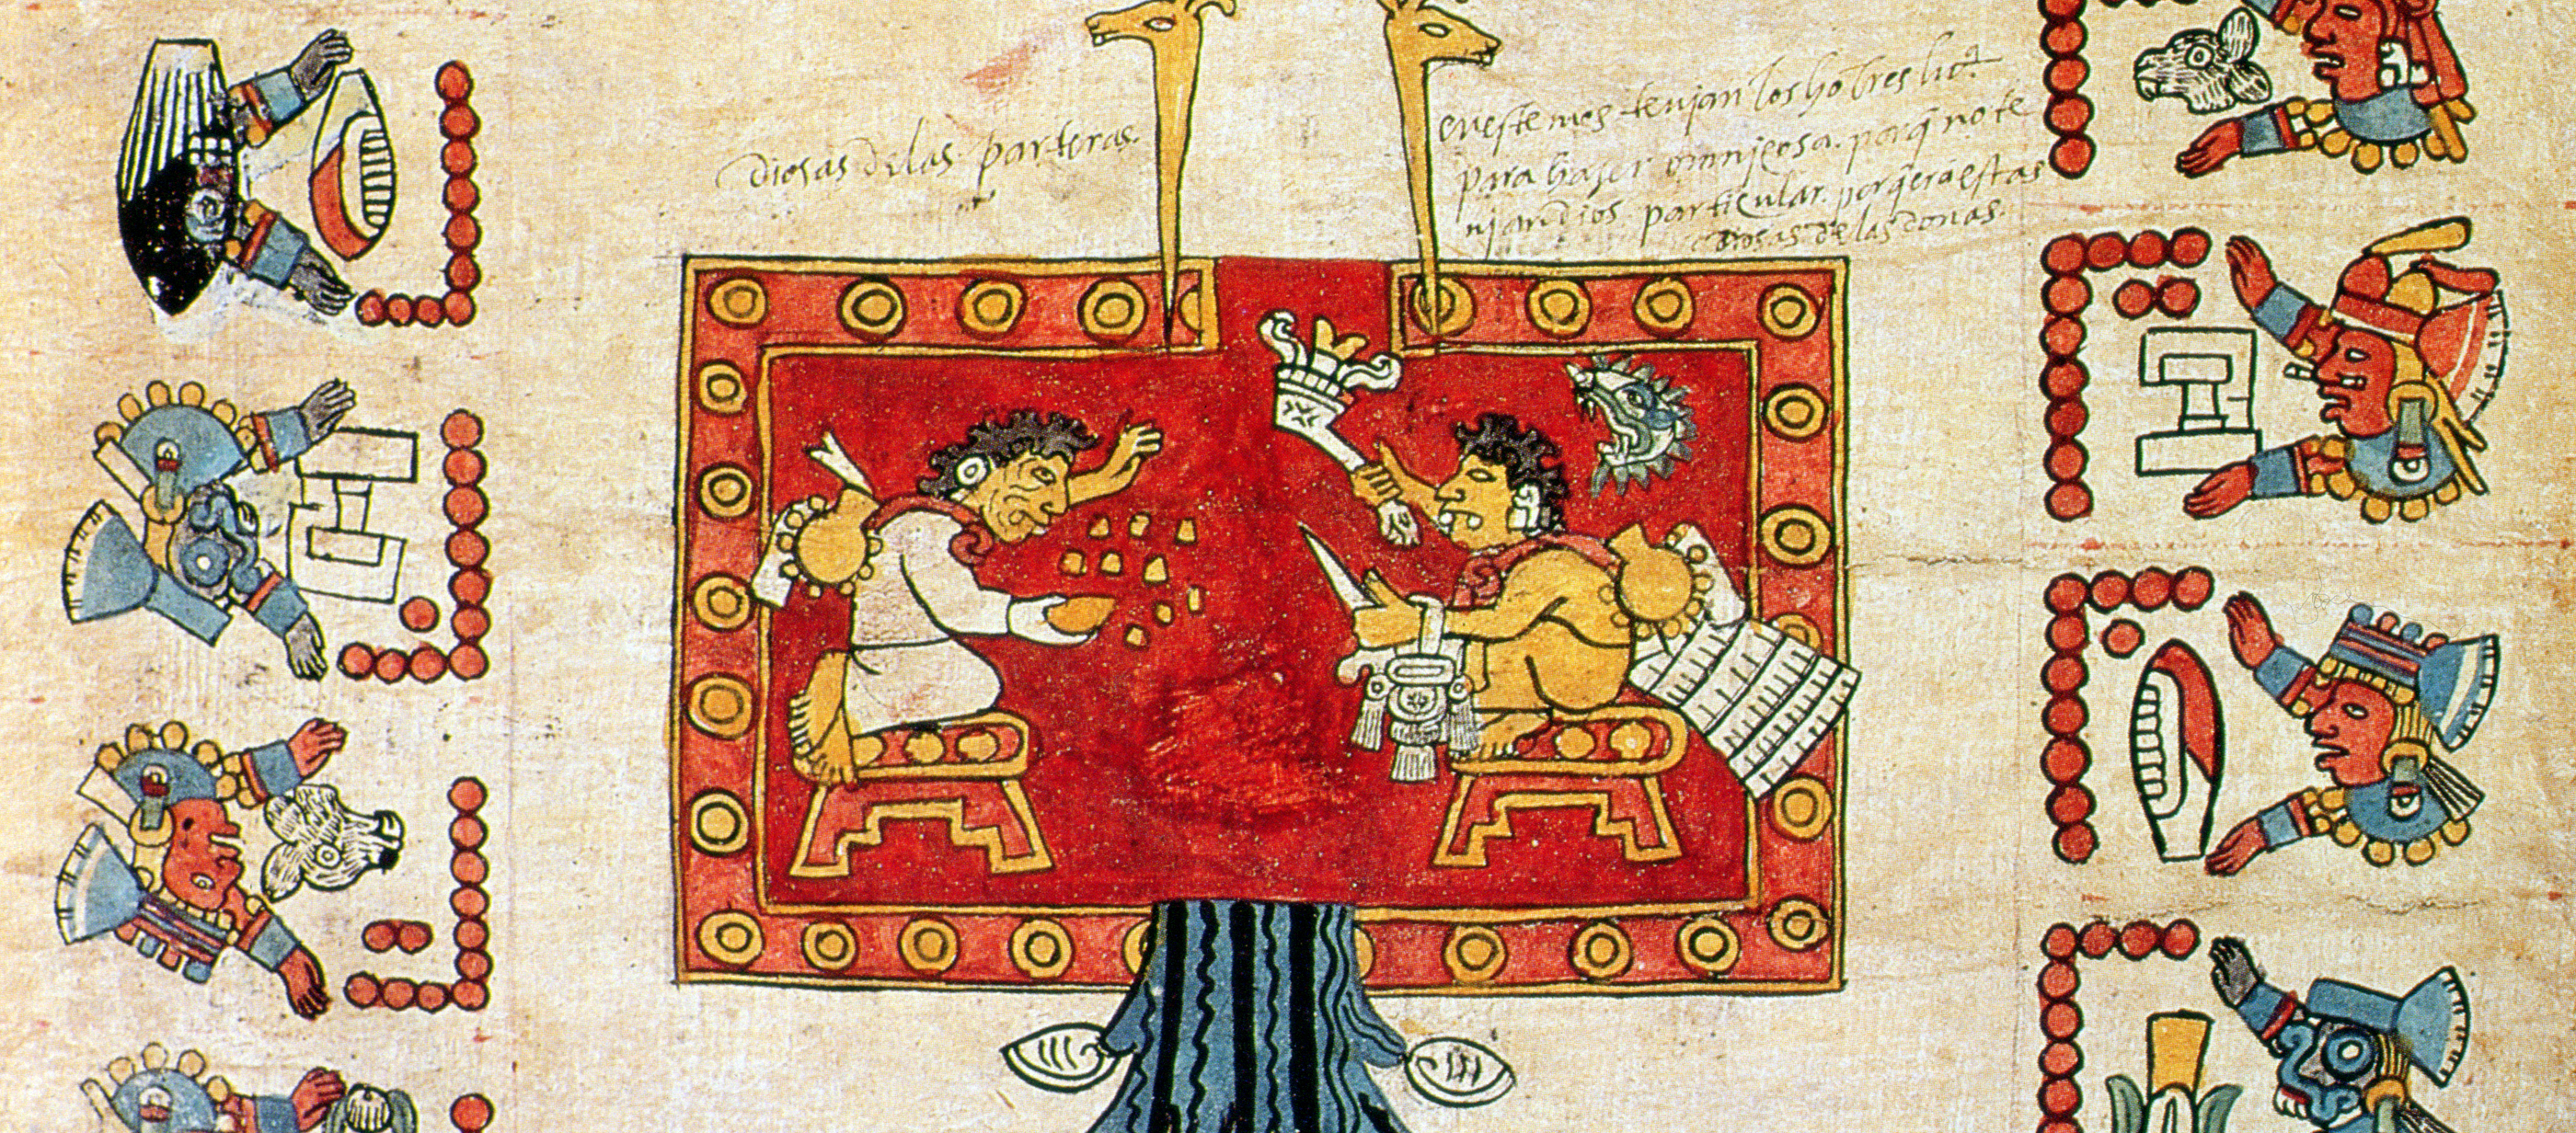 Codex showing the invention of the Aztec calendar.